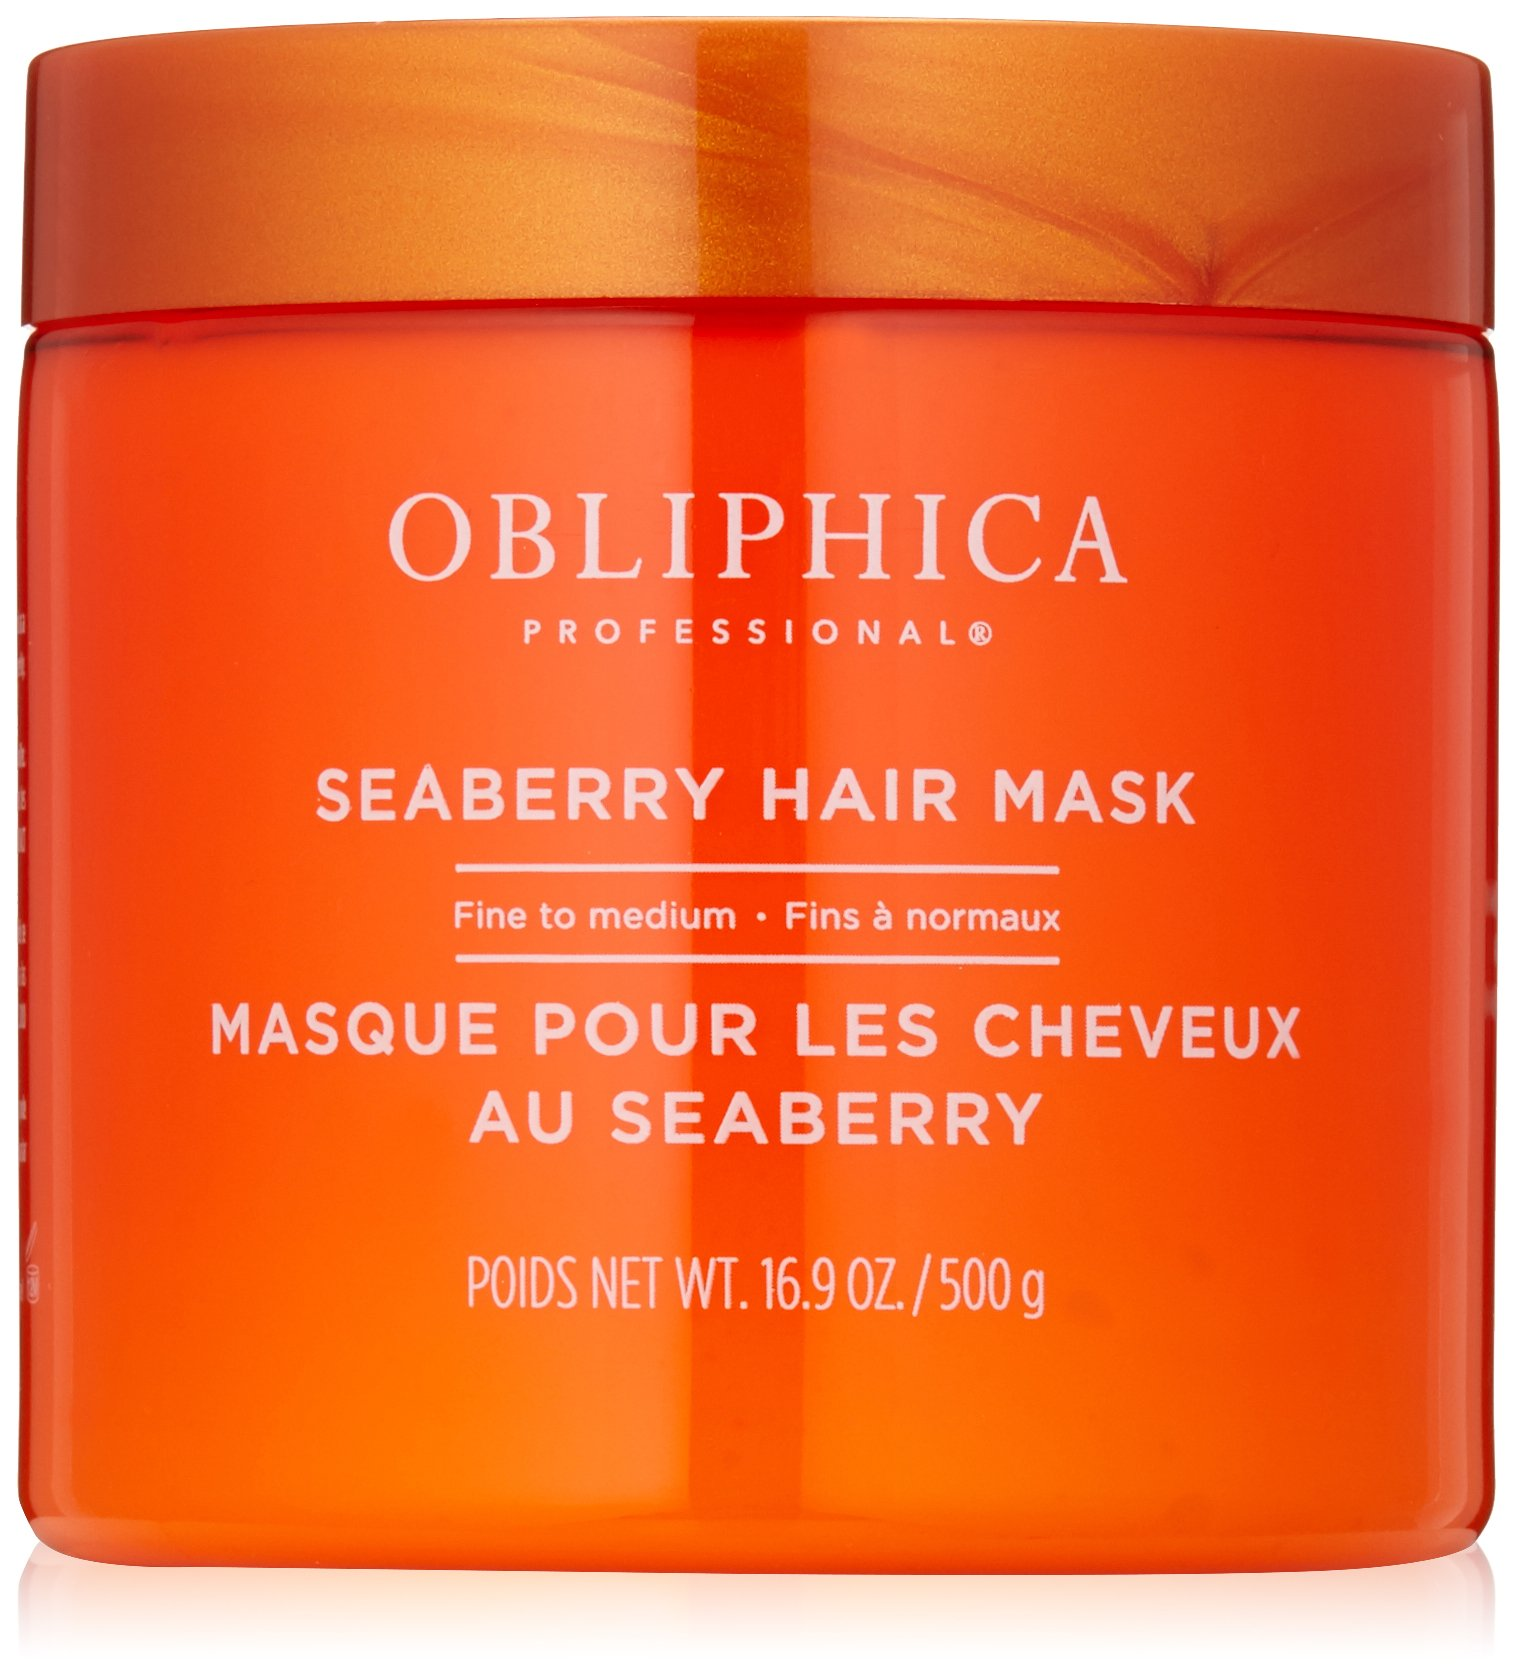 Obliphica Professional Fine to Medium Seaberry Mask, 16.9 oz